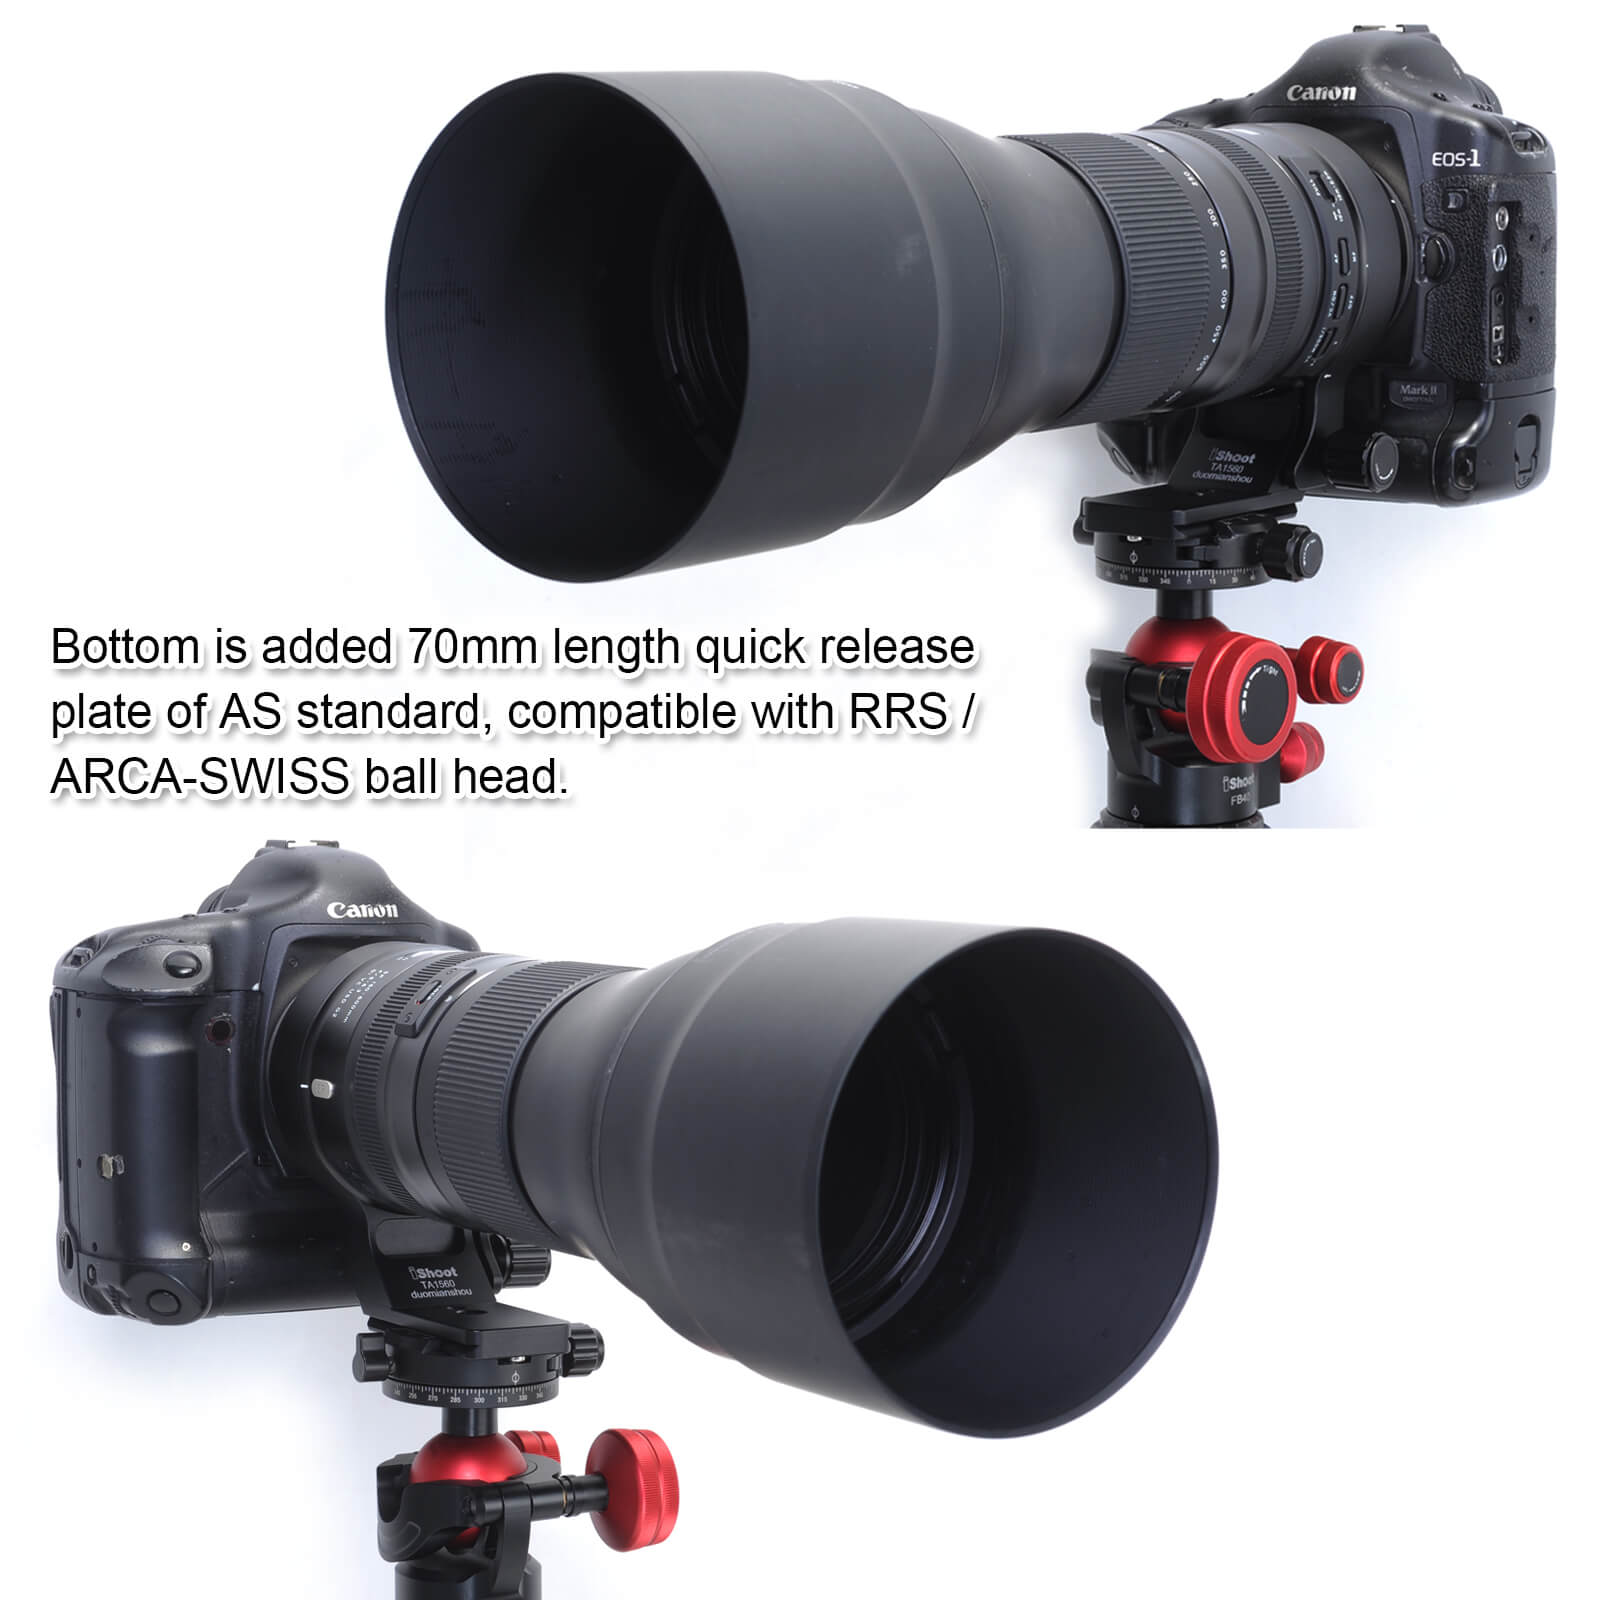 Built-in ARCA Type Quick Release Plate for Tripod Ball Head iShoot Camera Lens Collar Support for Tamron SP 150-600mm f//5-6.3 Di VC USD G2 Lens A022 Tripod Mount Ring